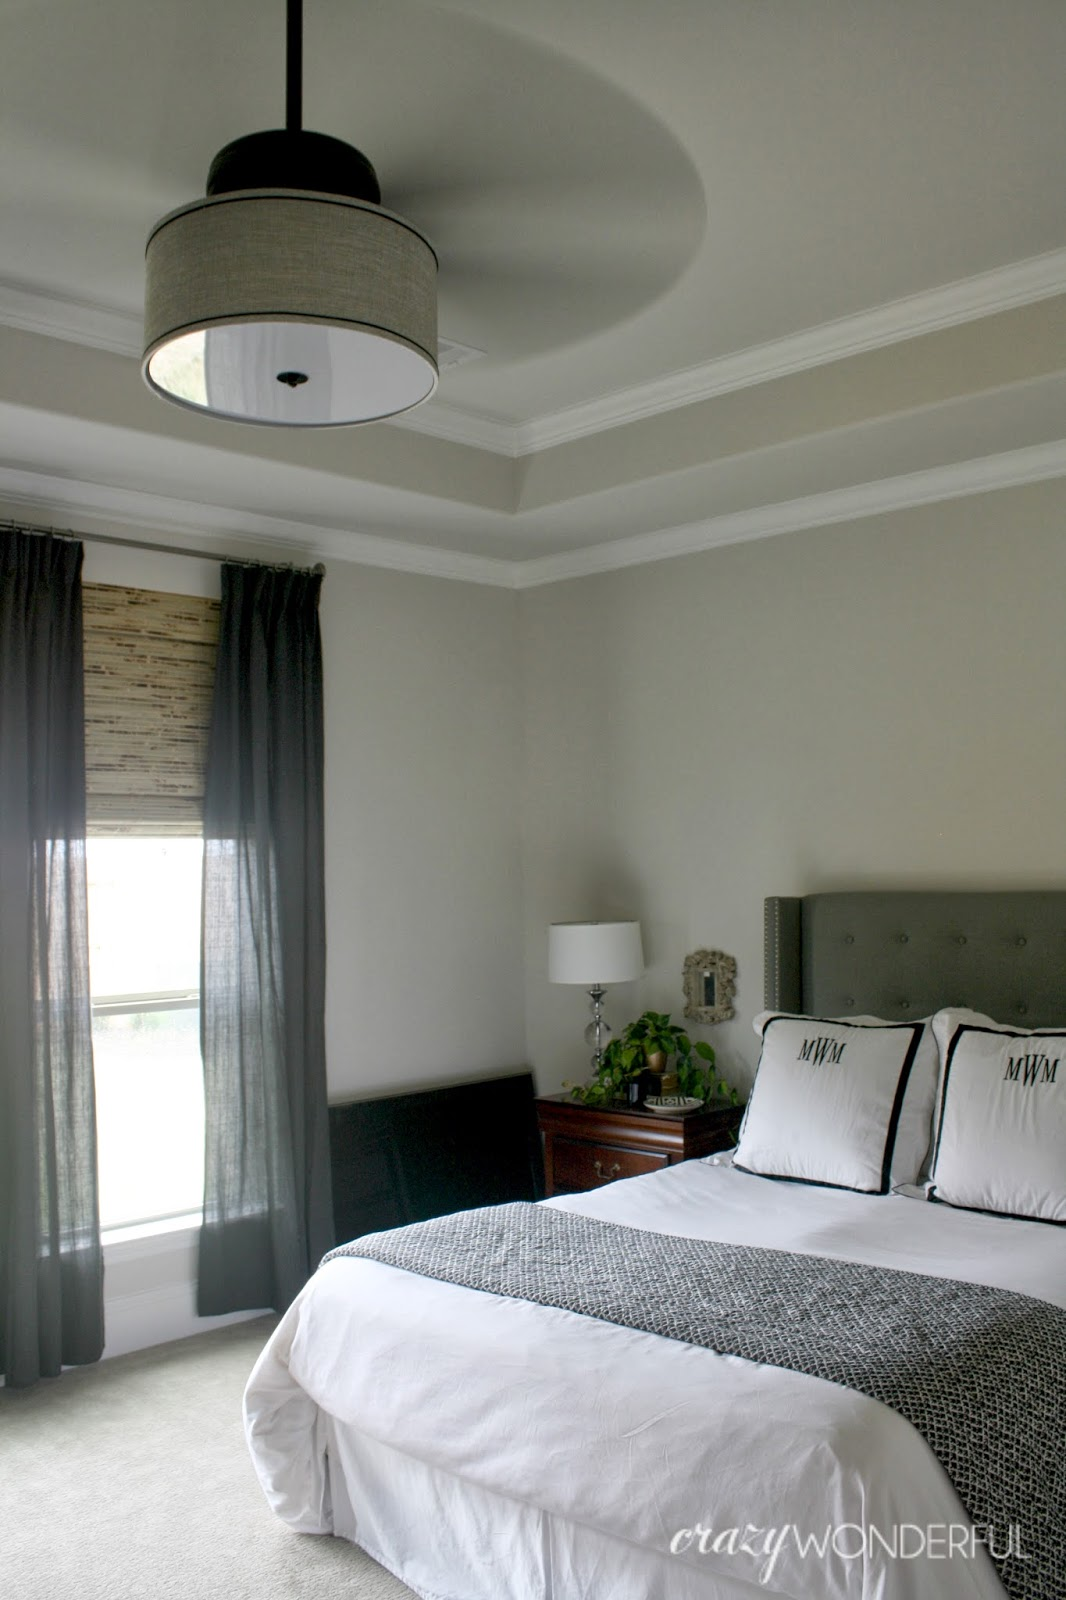 crazy wonderful diy drum shade ceiling fan